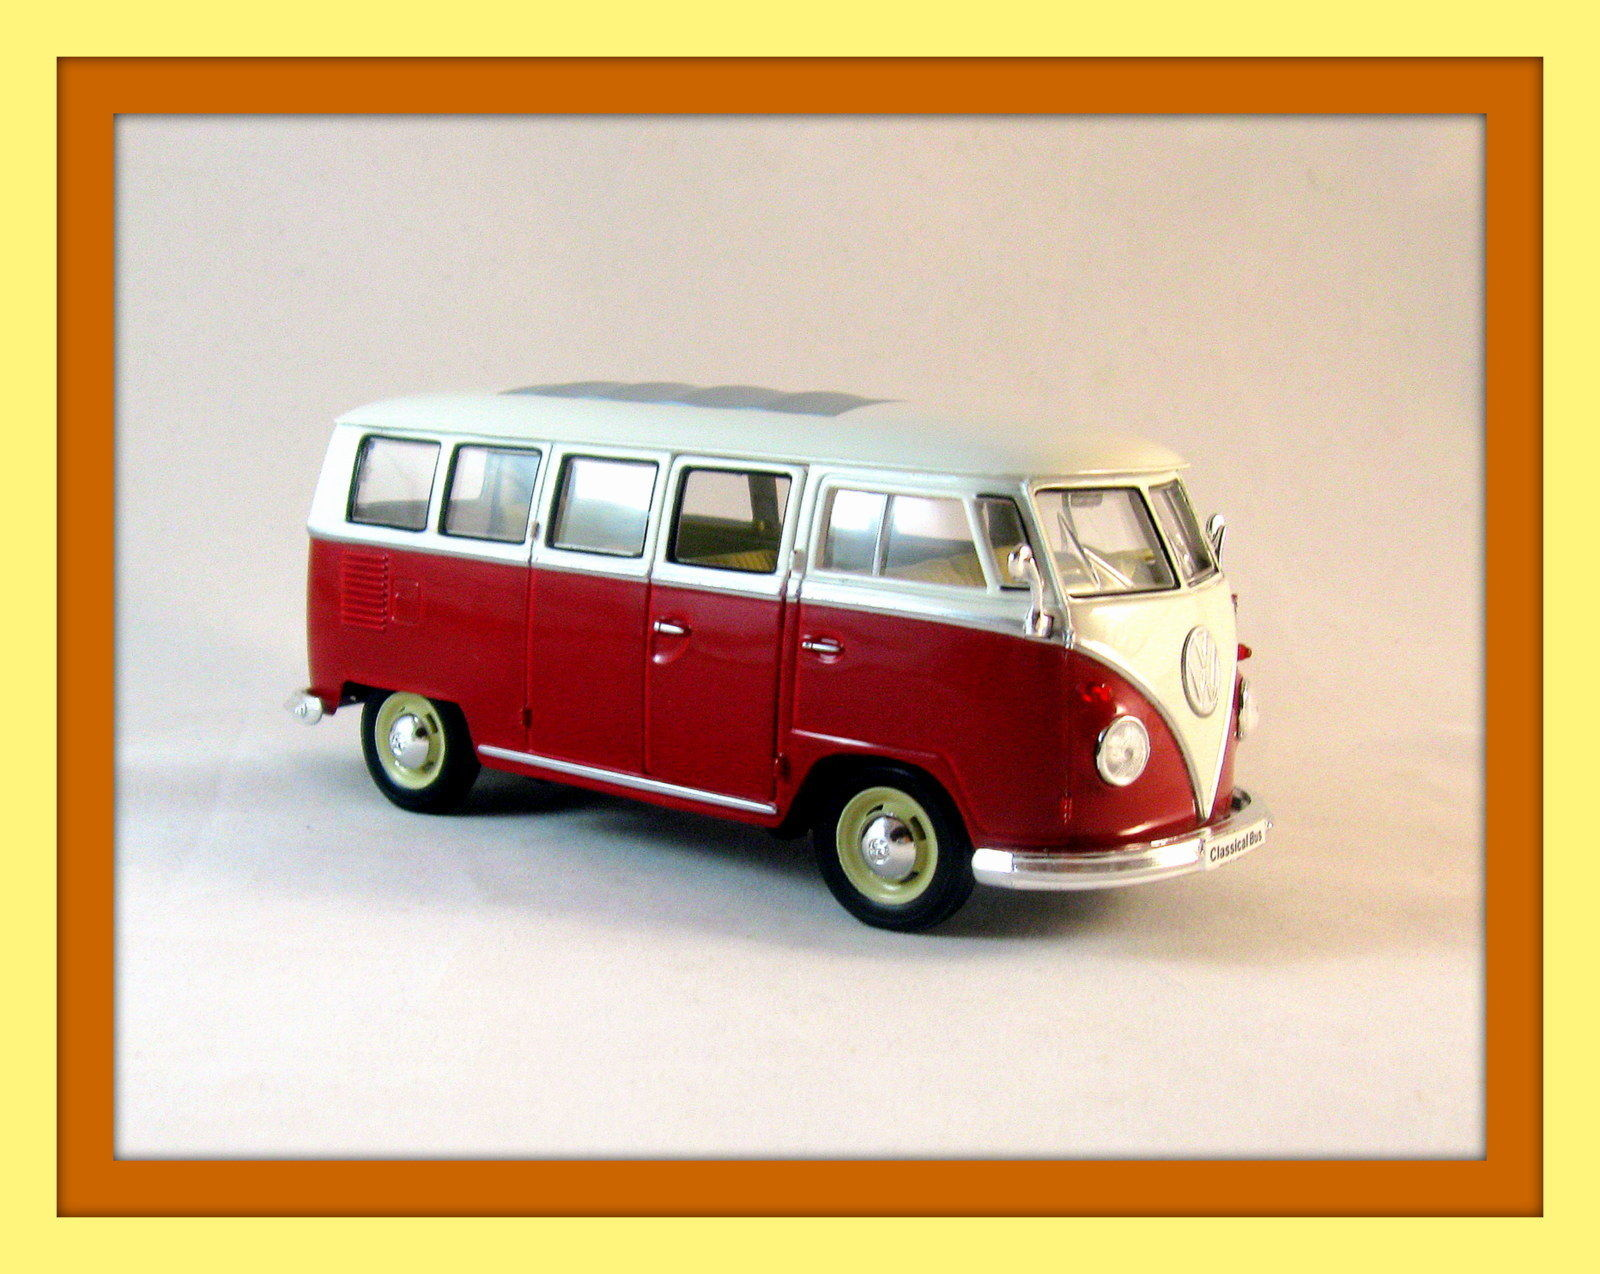 1963 volkswagen t1 bus bordeaux welly 1 24 diecast car collector 39 s model new contemporary. Black Bedroom Furniture Sets. Home Design Ideas